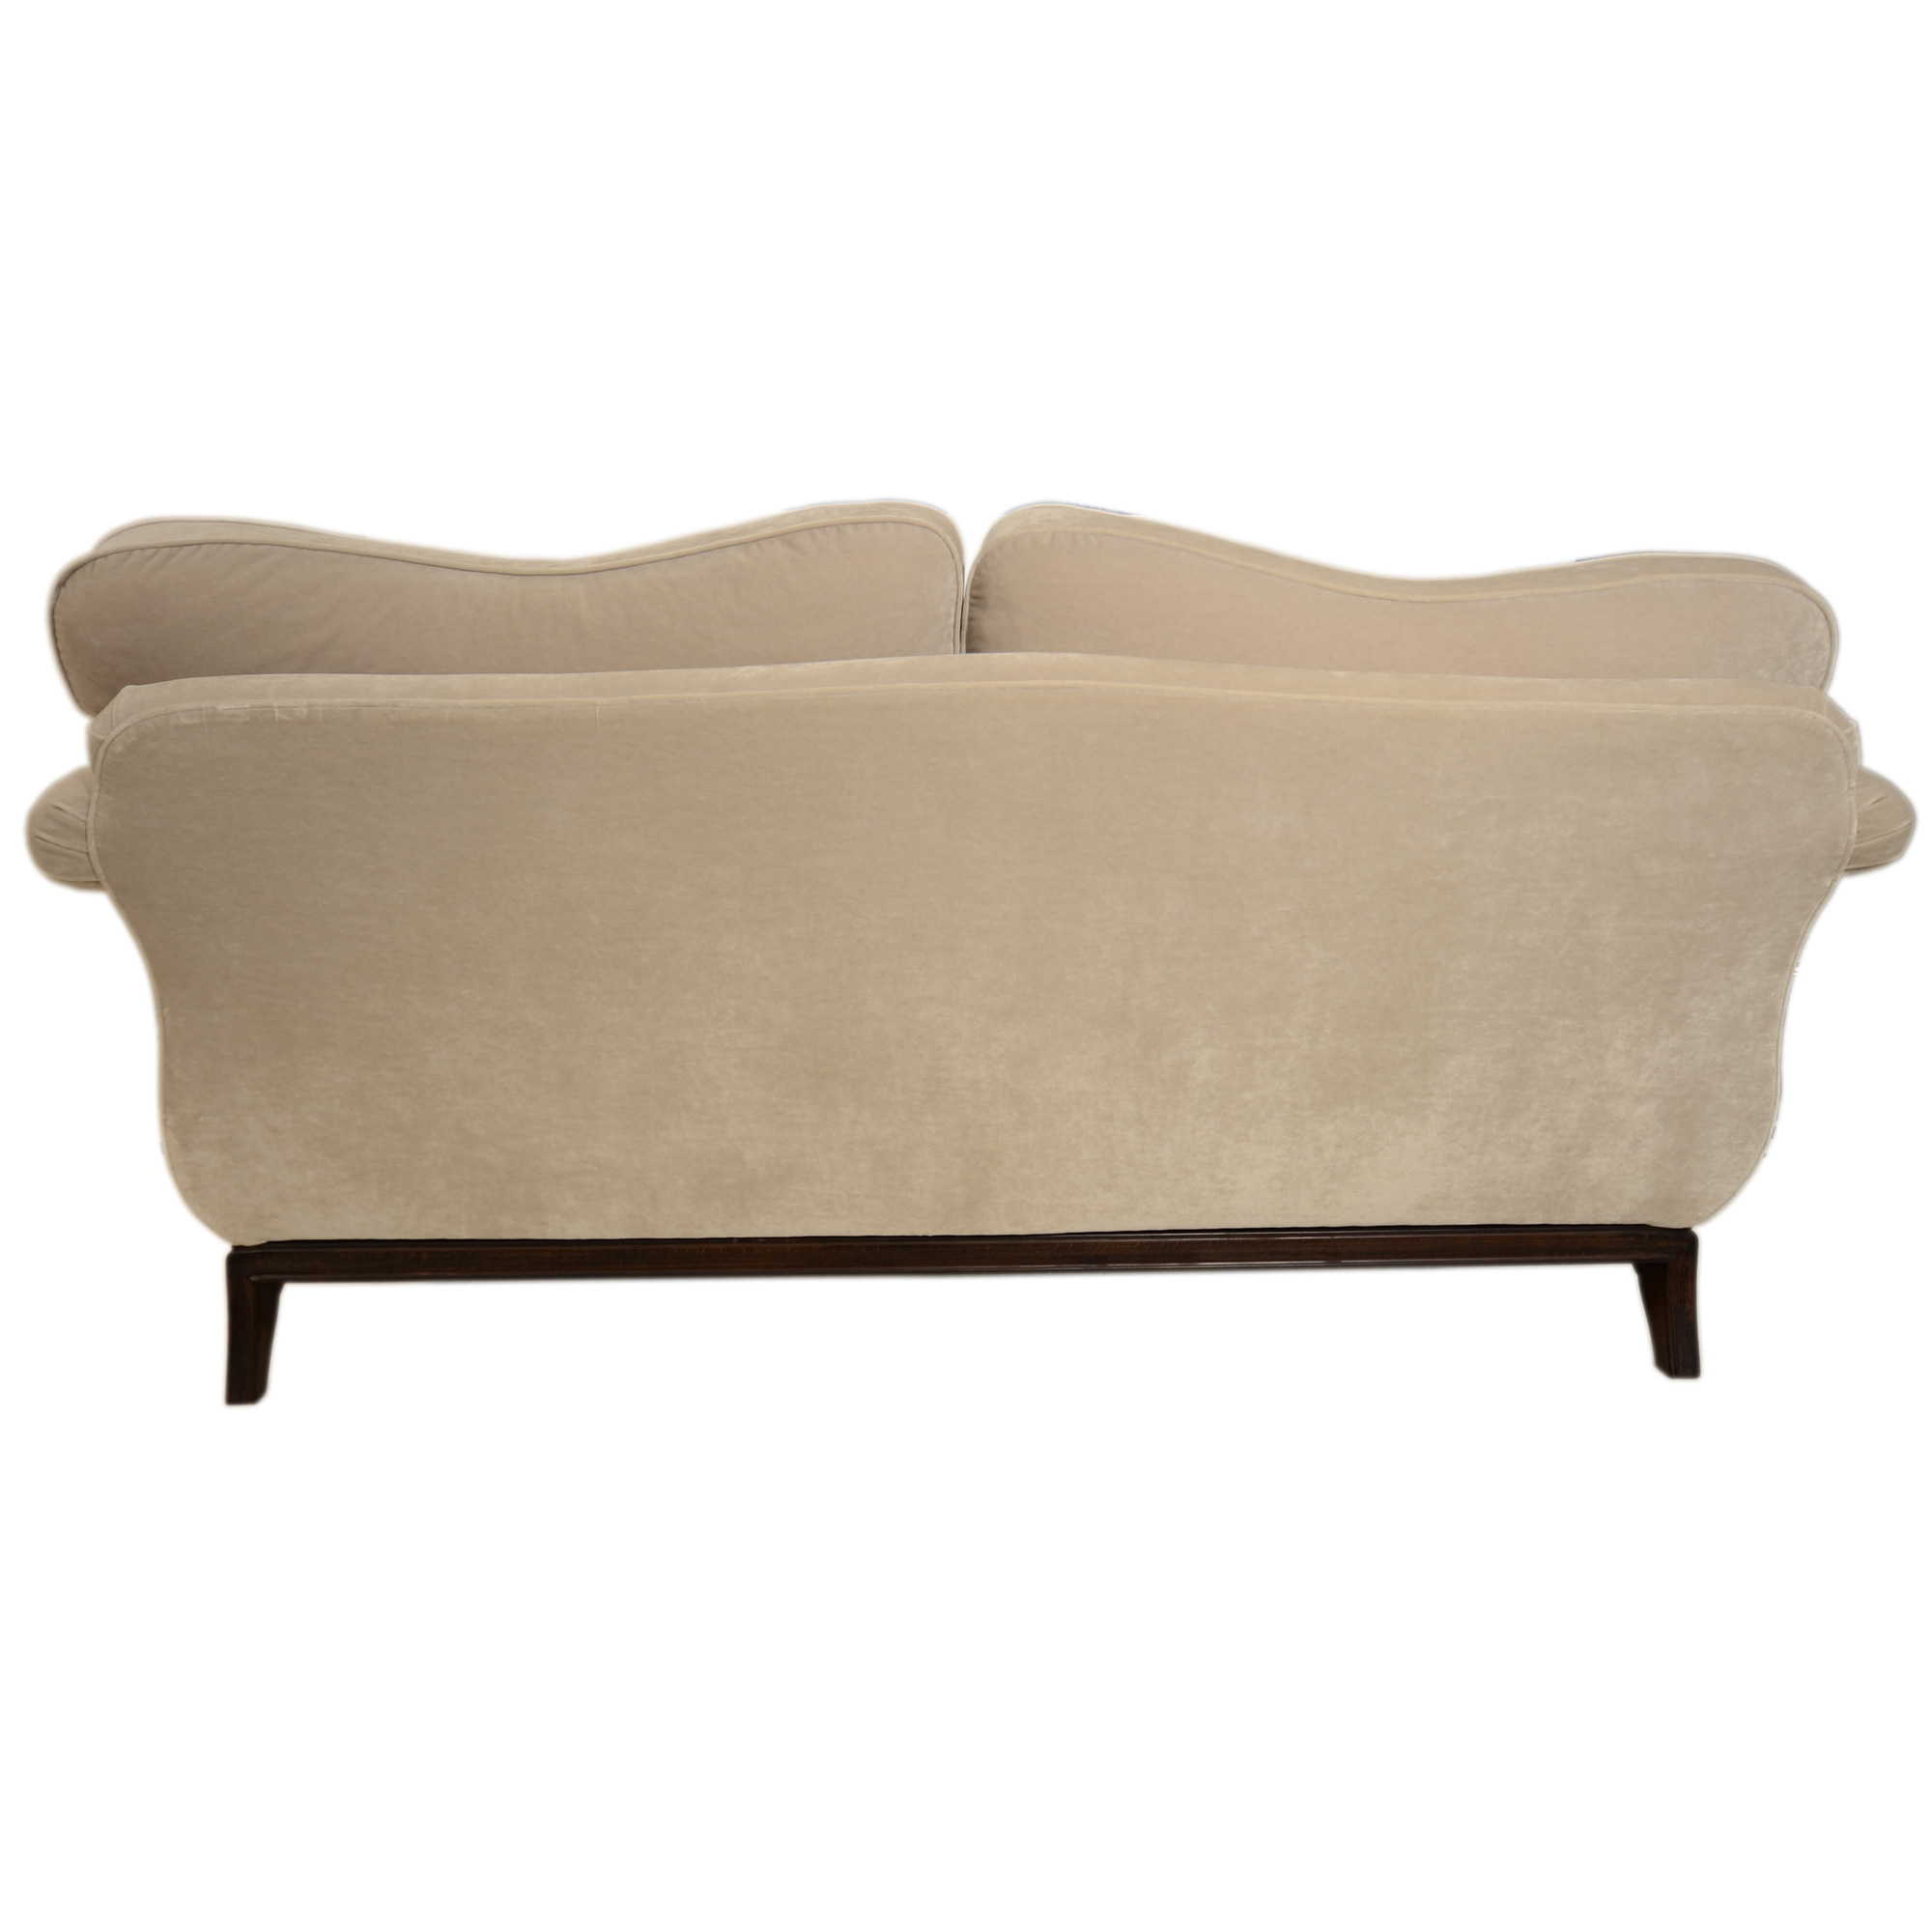 Super Camilla Sofa Ocoug Best Dining Table And Chair Ideas Images Ocougorg